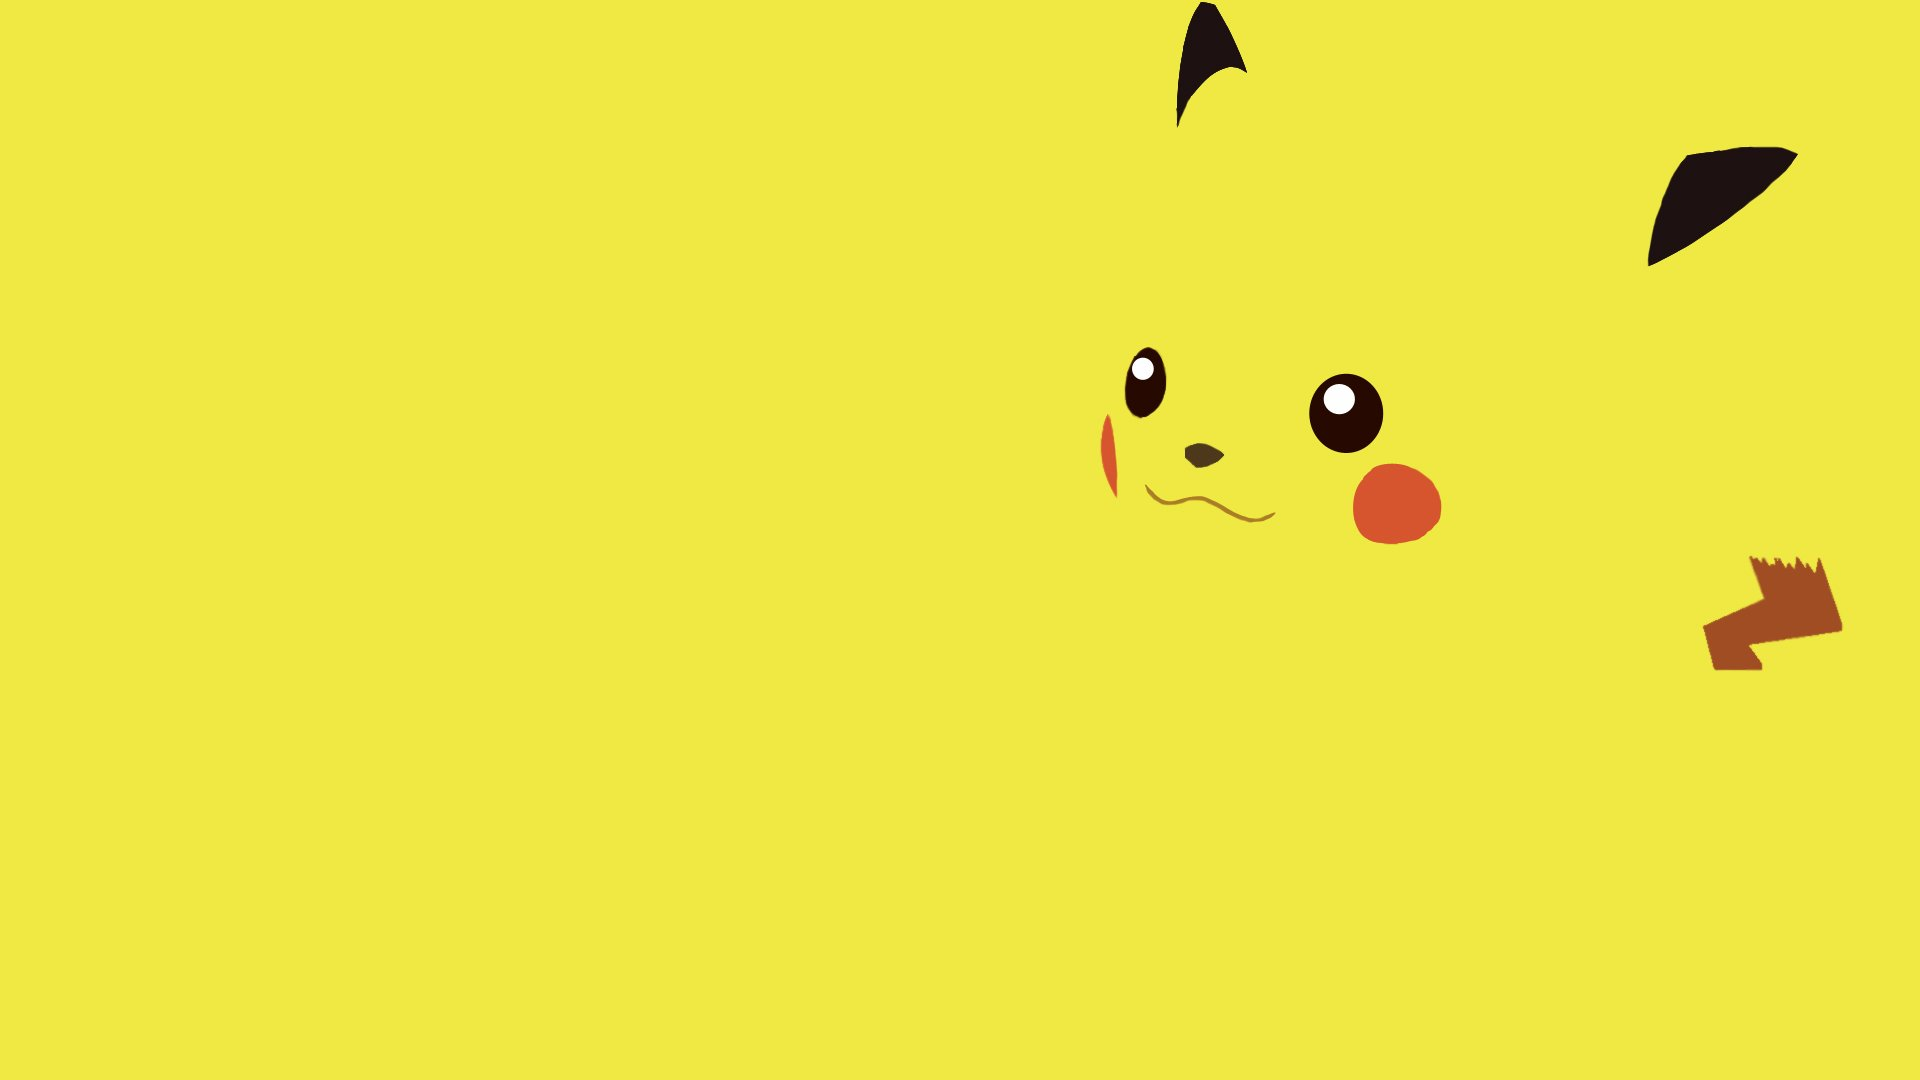 wallpopercomwallpaperpokemon pikachu 310901 1920x1080